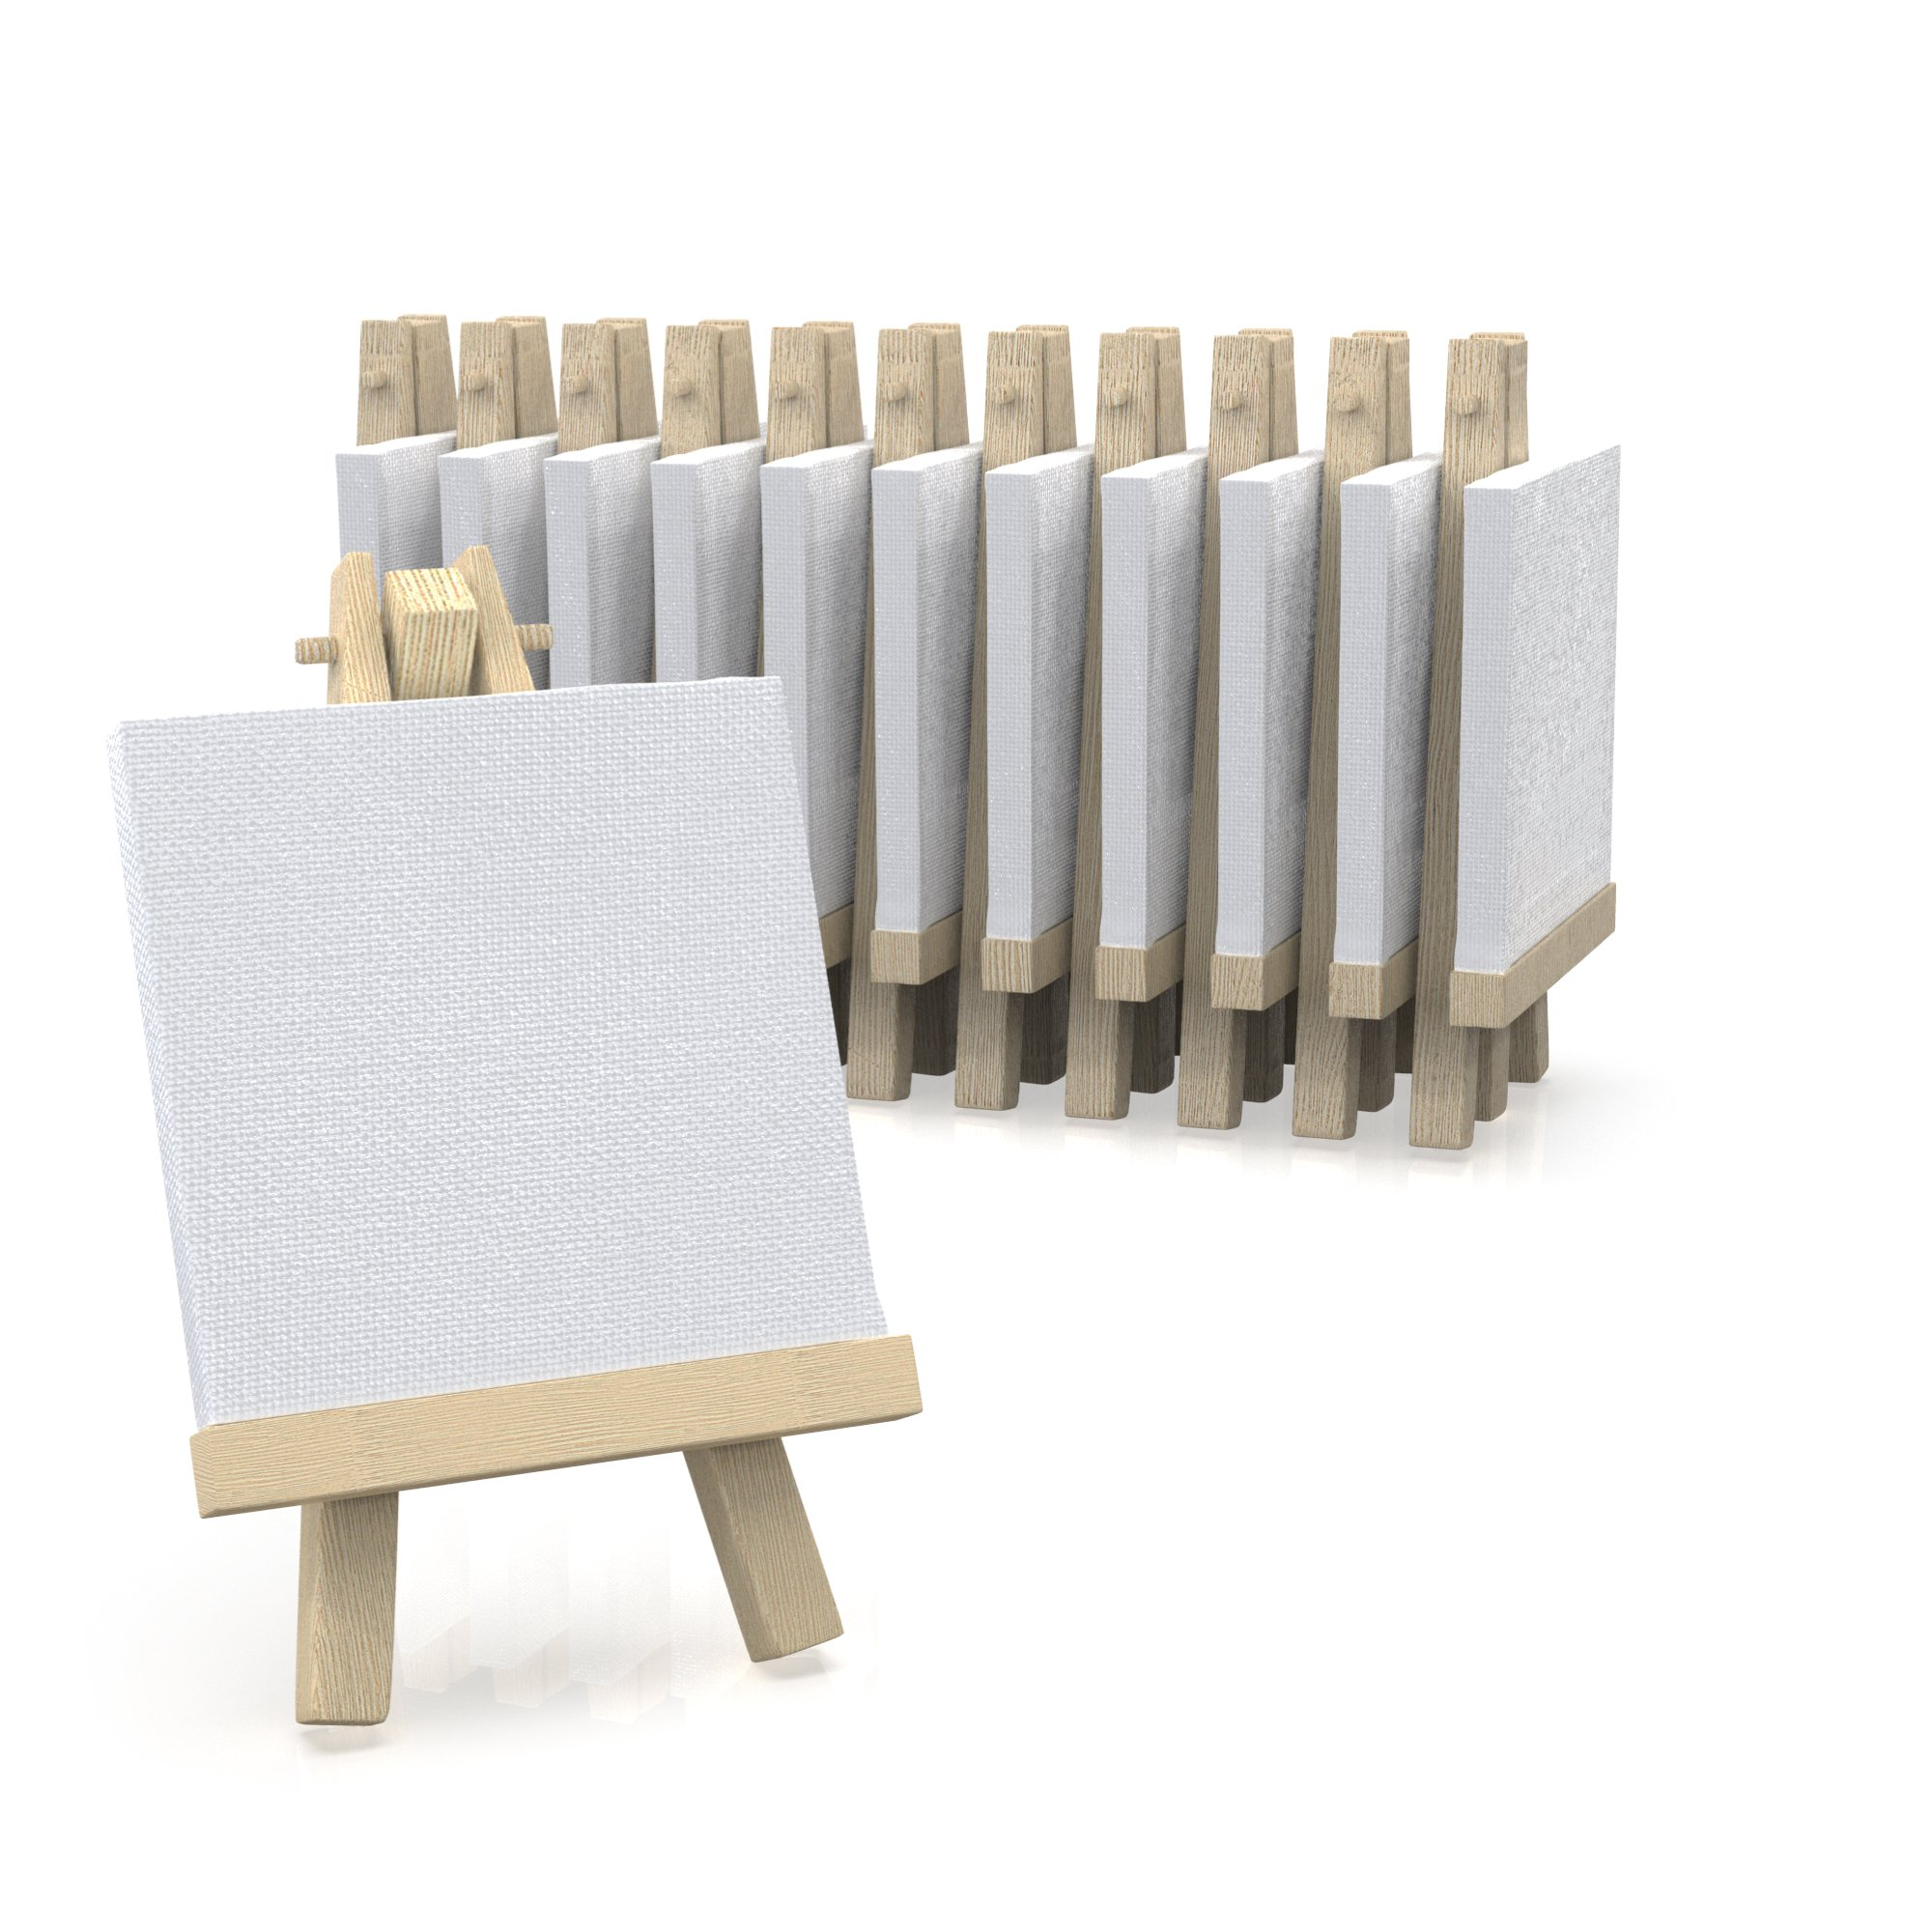 3''x3'' Canvas for Painting with Easel, Academy Art Supplies (12 Pack)